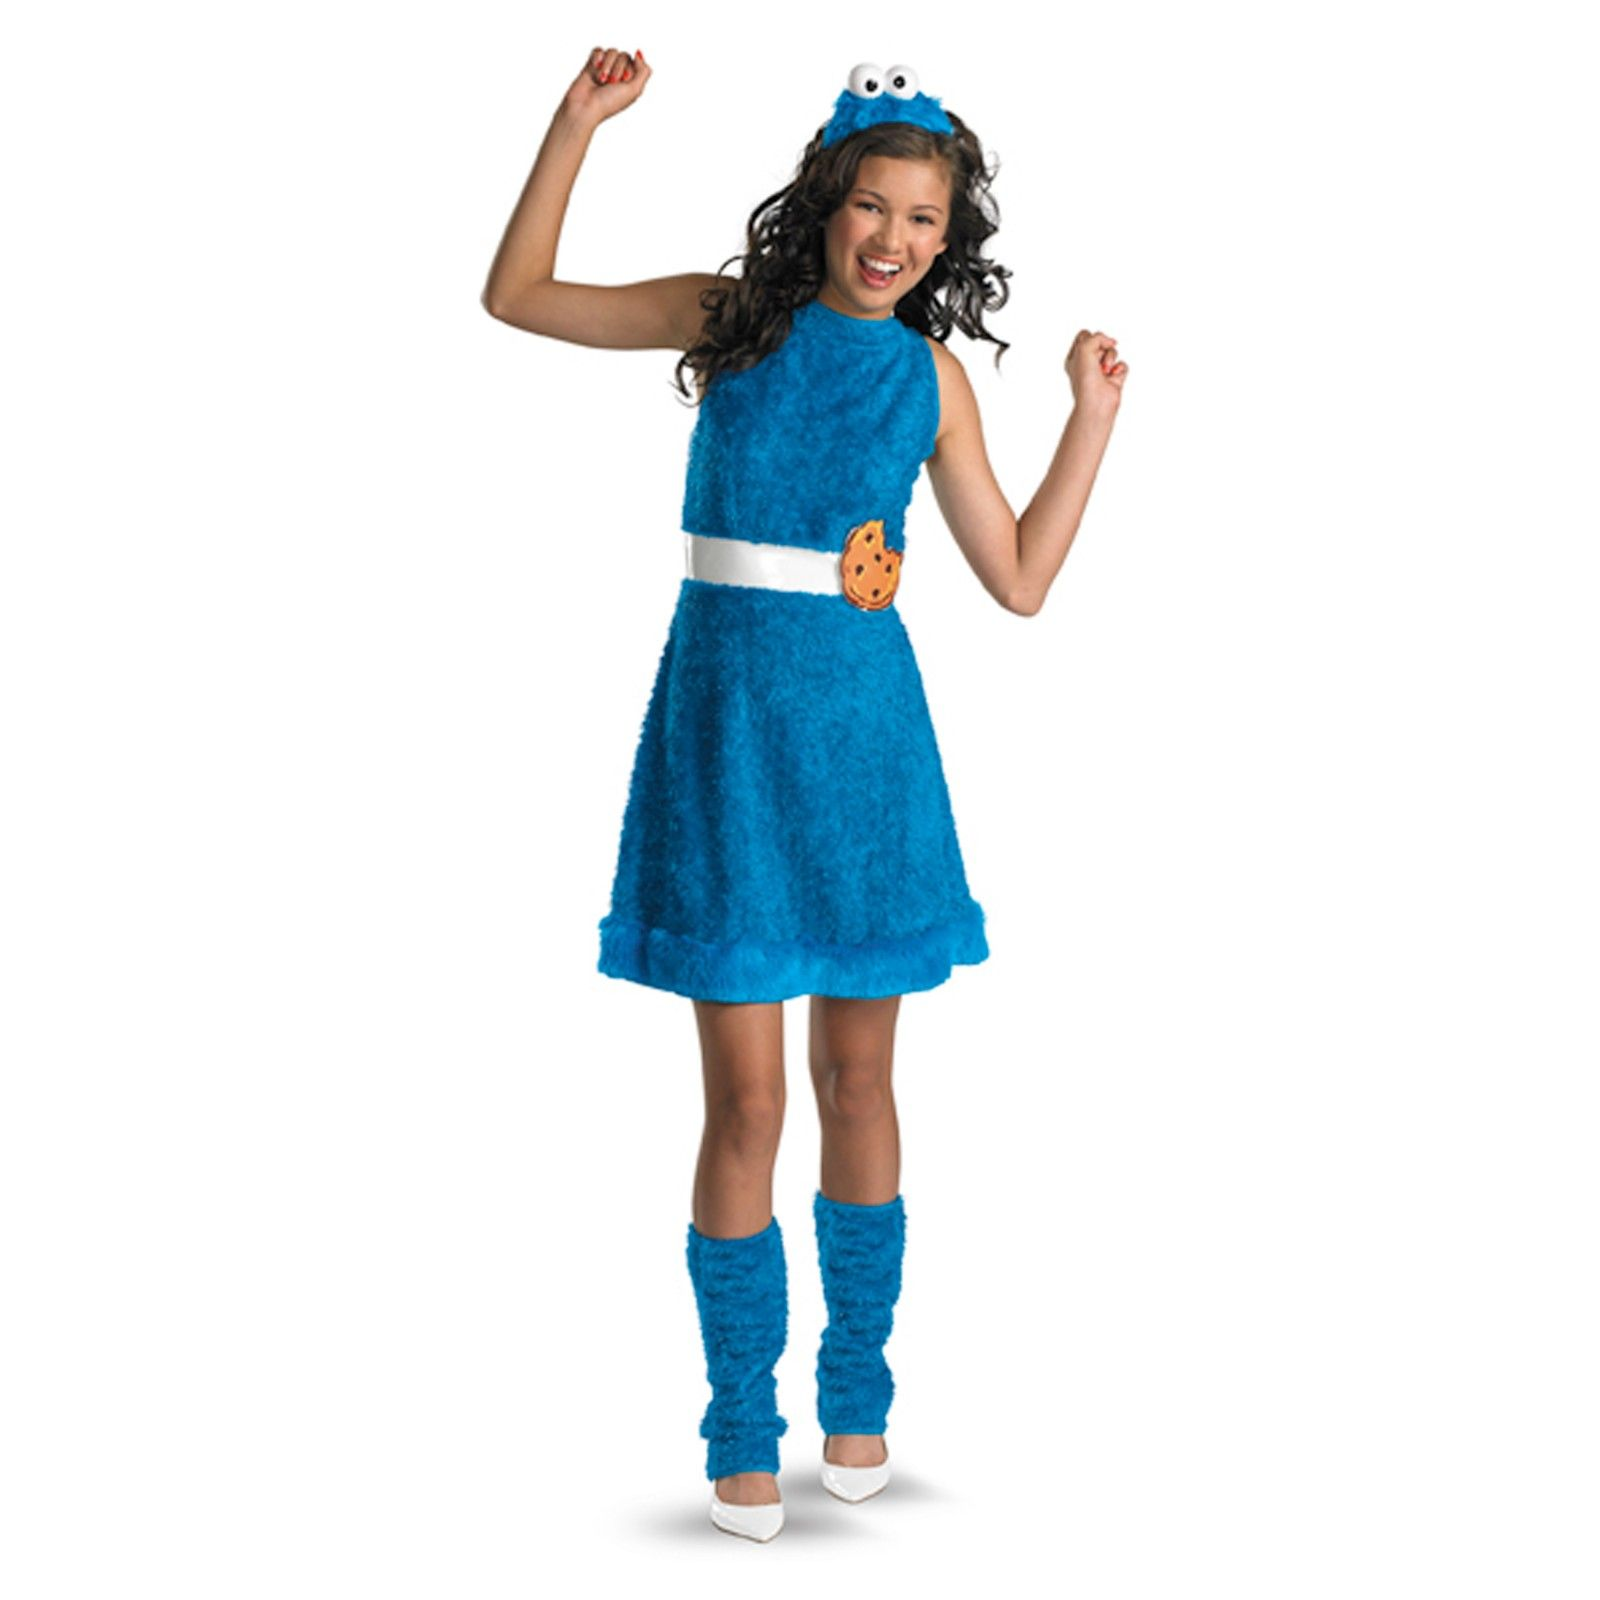 Cookie Monster Child/Tween Costume from CostumeExpress.com #Costume #SesameStreet  sc 1 st  Pinterest & Cookie Monster Child/Tween Costume from CostumeExpress.com #Costume ...